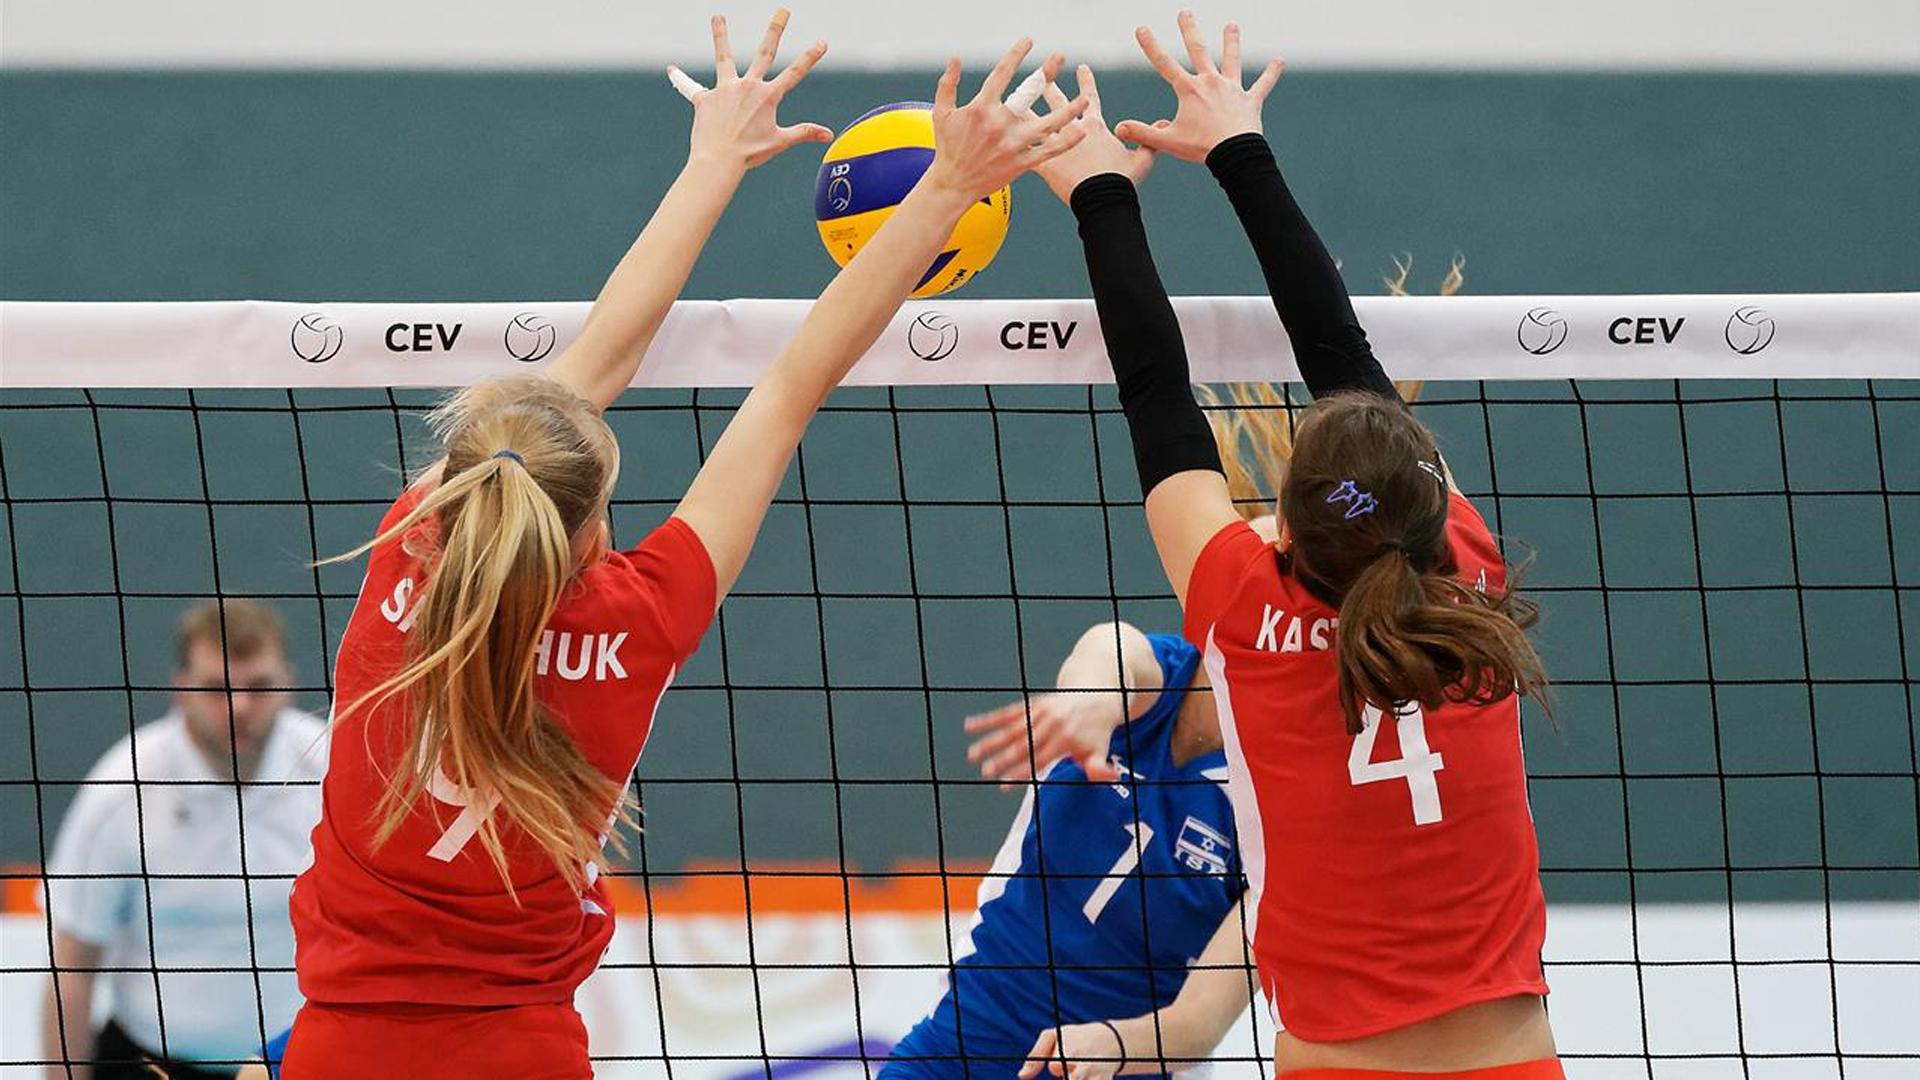 Women spiking and blocking while playing volleyball.